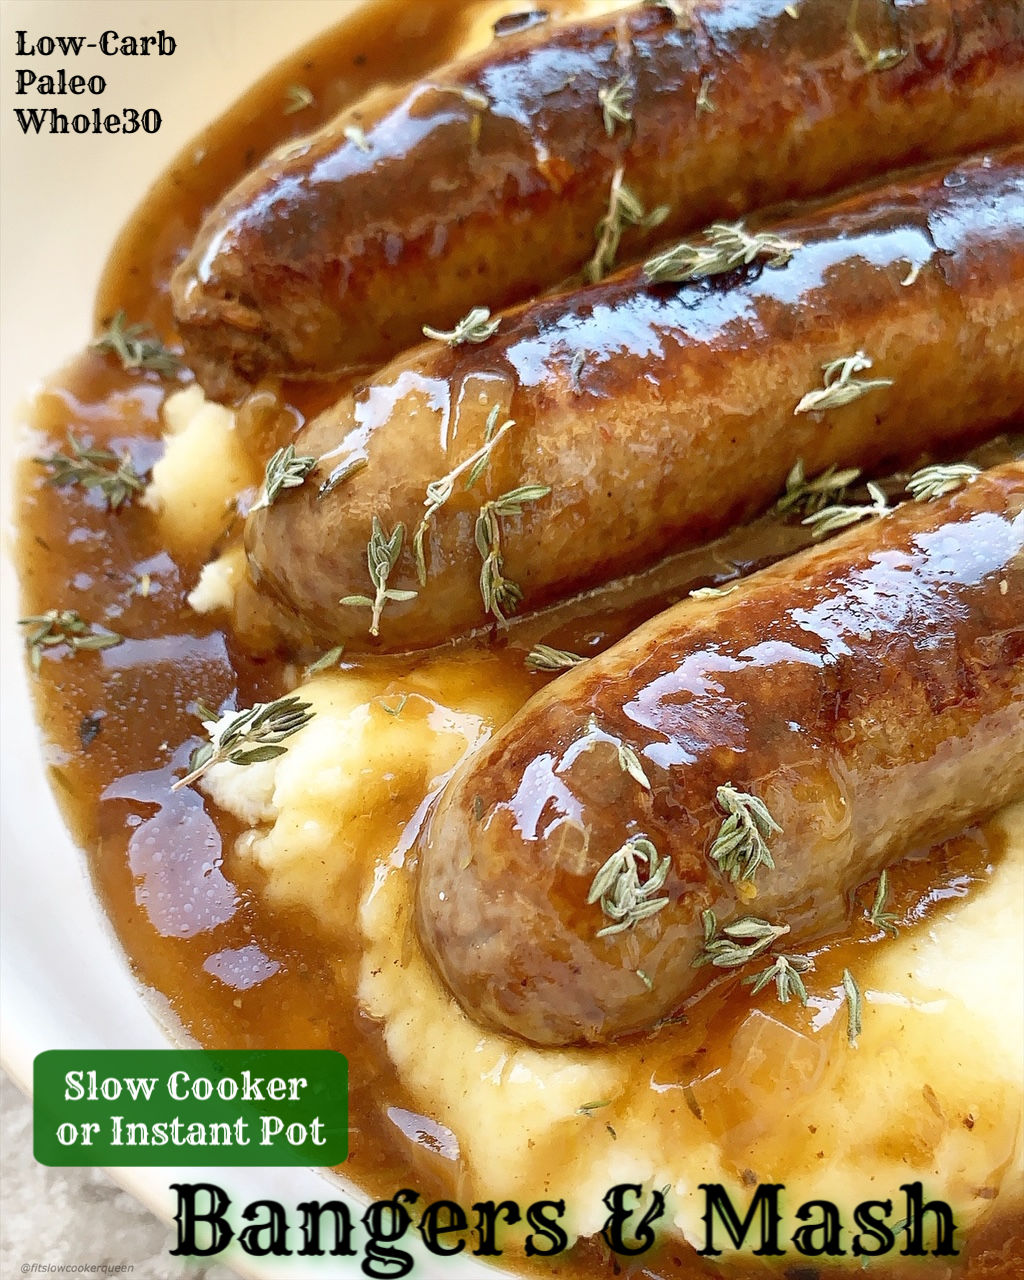 Bangers and mash also known as sausages and mashed potatoes is traditionally a hearty and comforting dish. This lighter, cleaned up version uses a simple homemade gravy and mashed cauliflower to make it low-carb, paleo, and whole30 compliant.